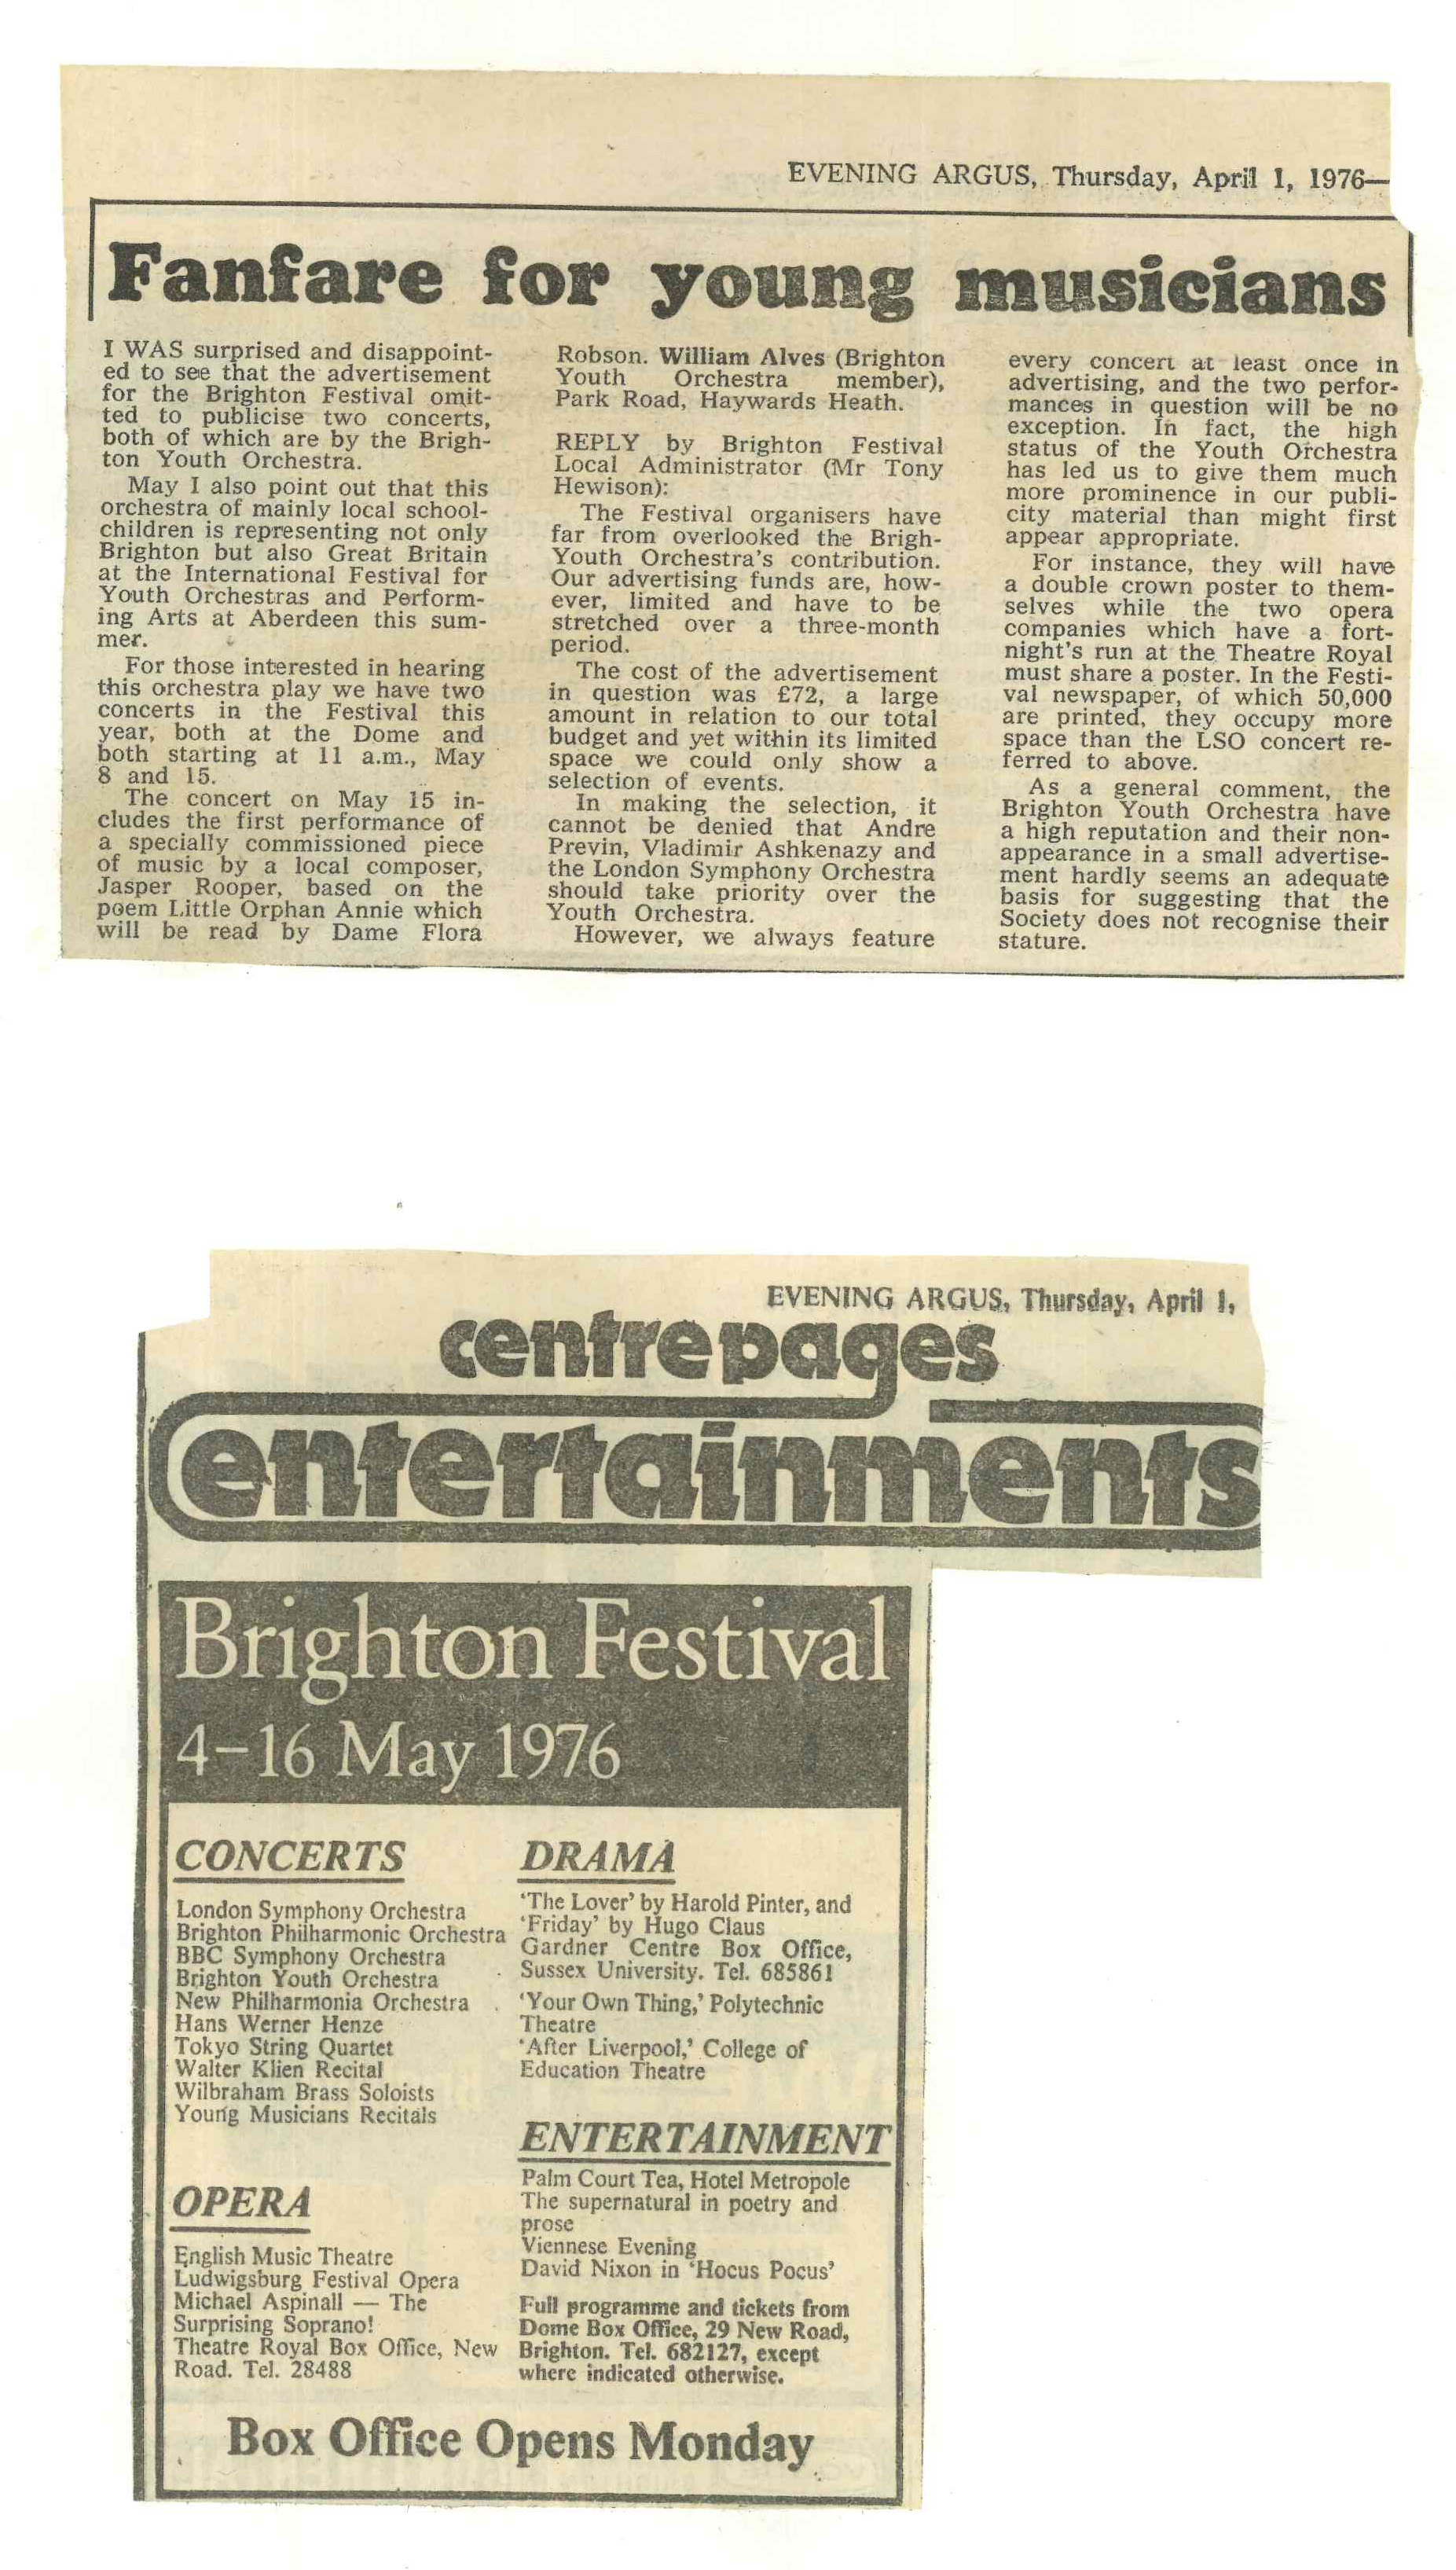 00029-Evening Argus, 1st April 1976.jpg